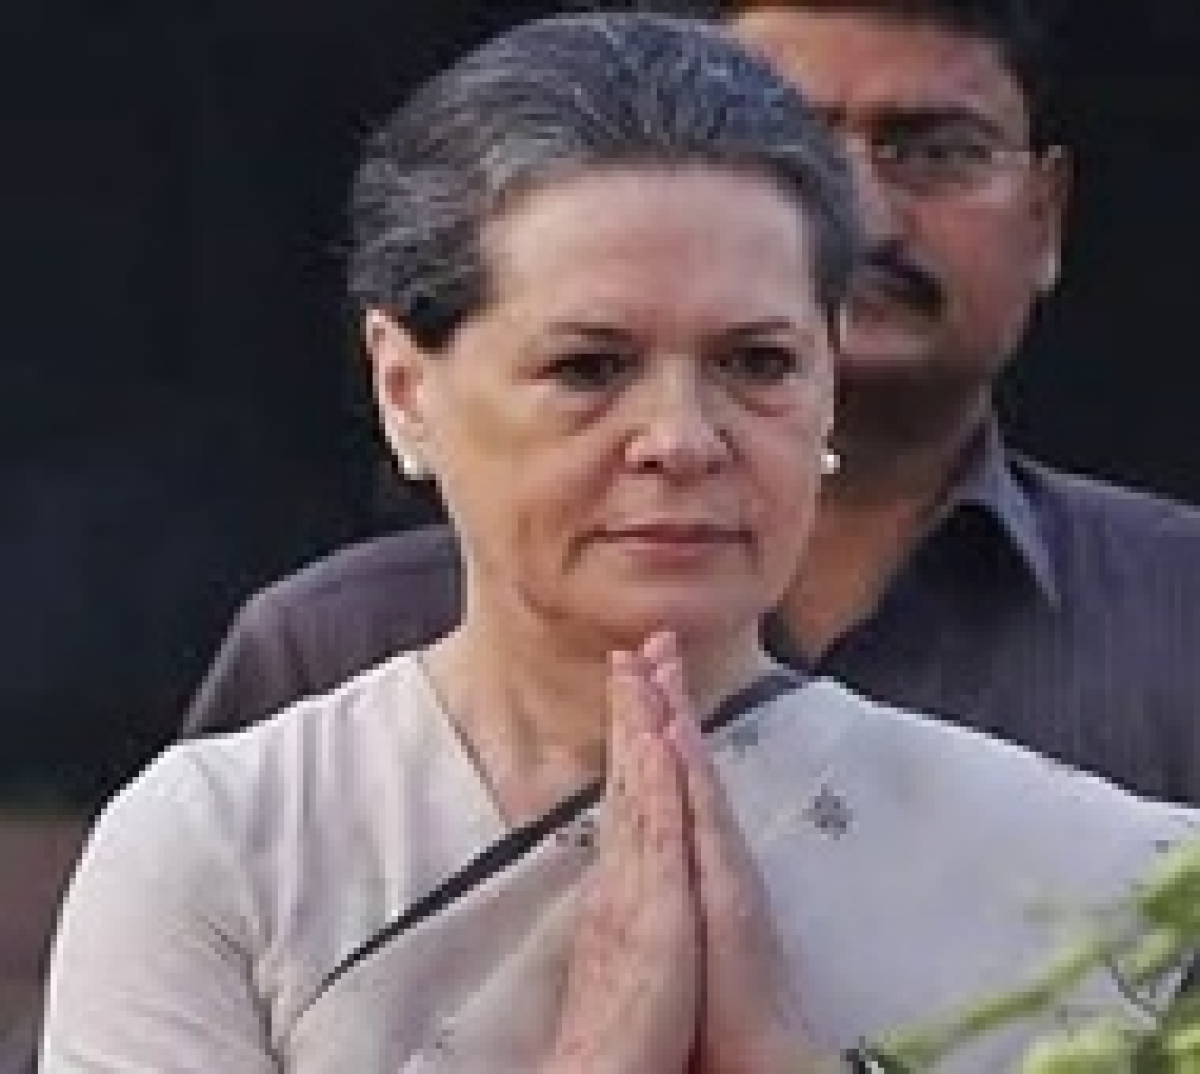 Country passing through a critical phase Sonia